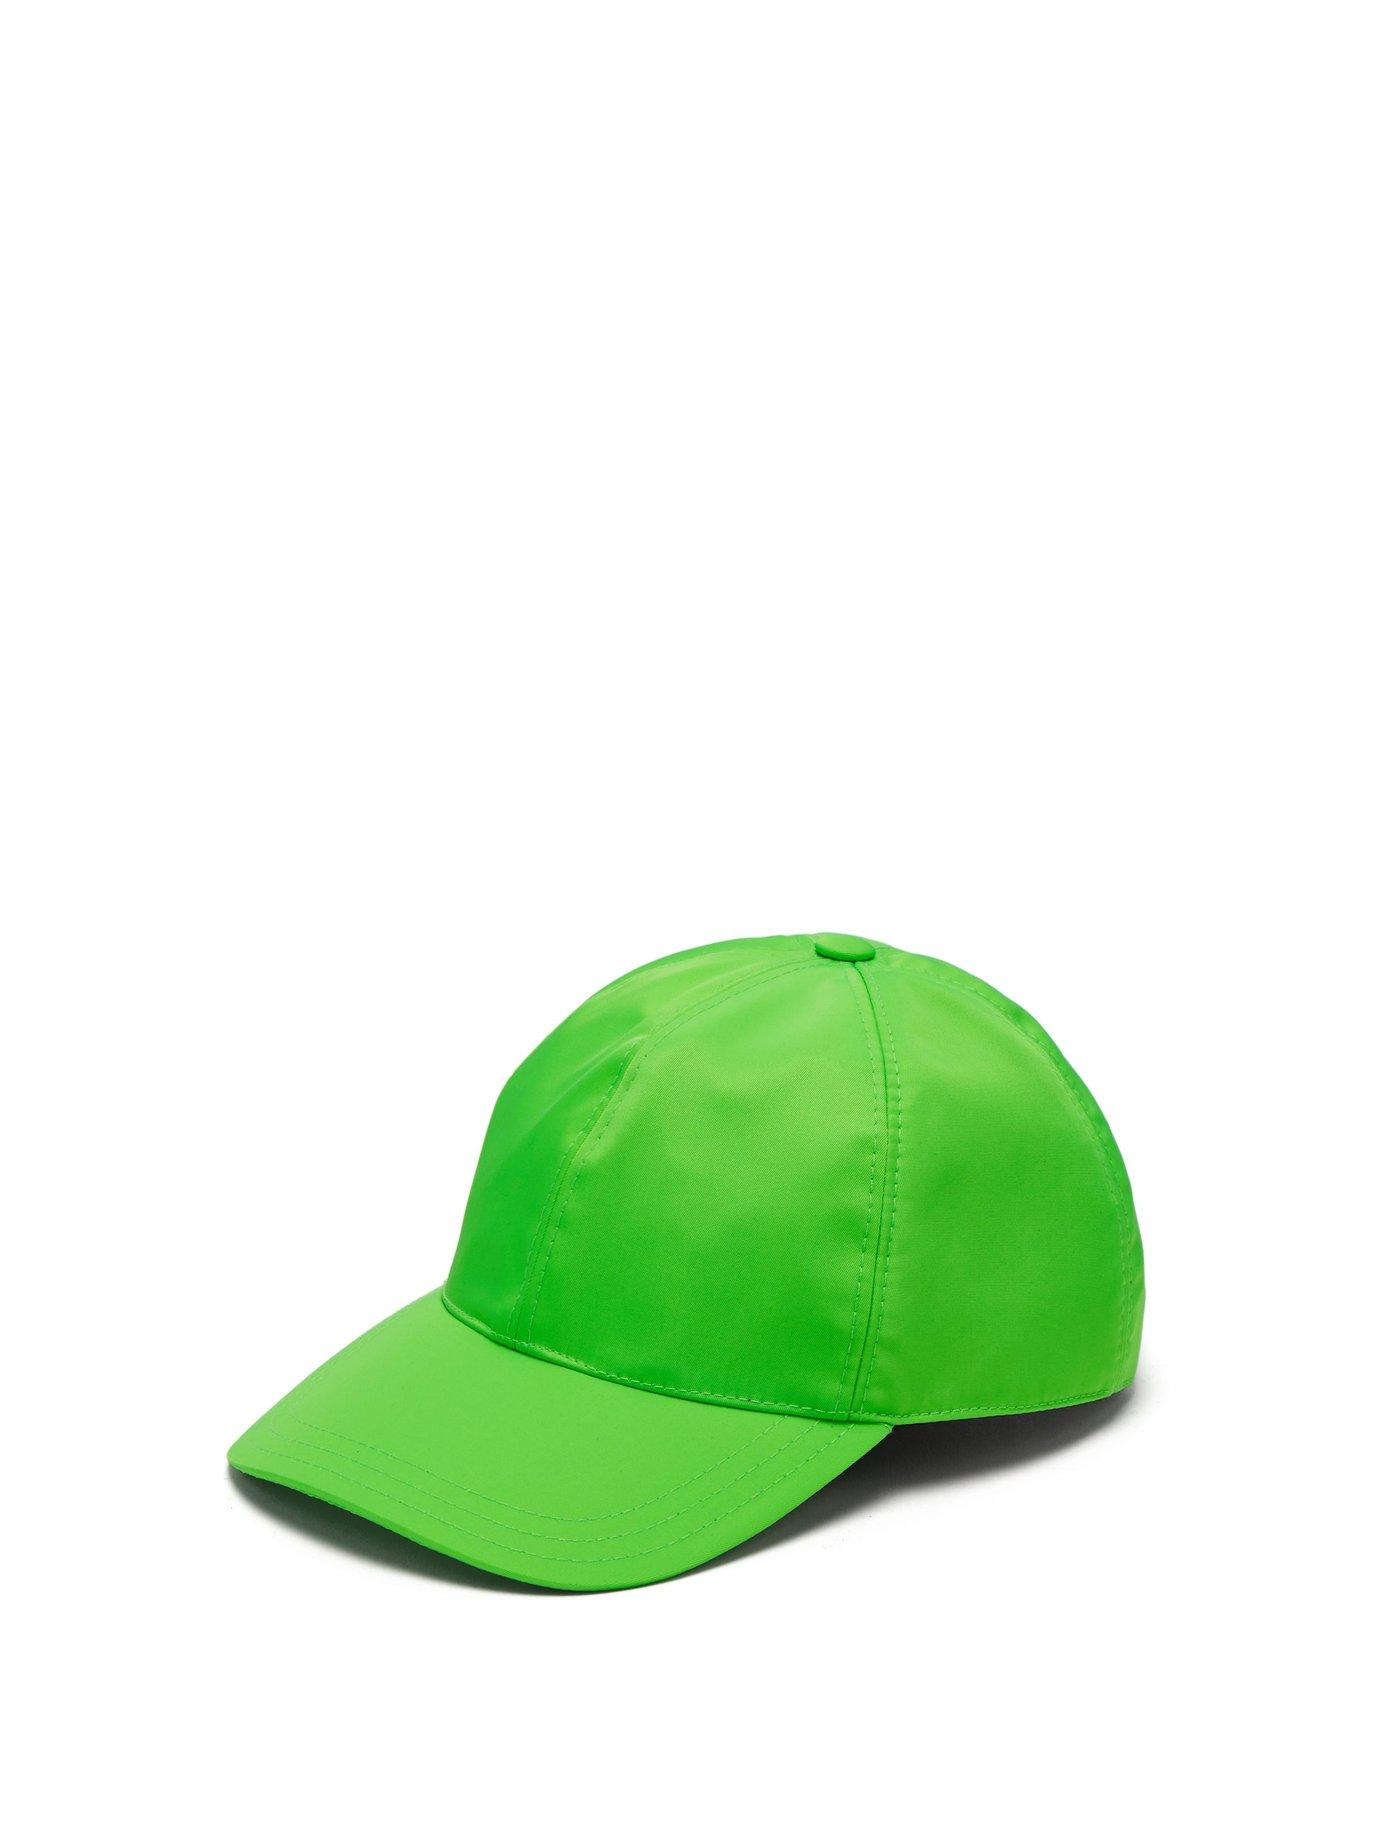 Prada Logo-Plaque Baseball Cap In Green  5a4c34709a53